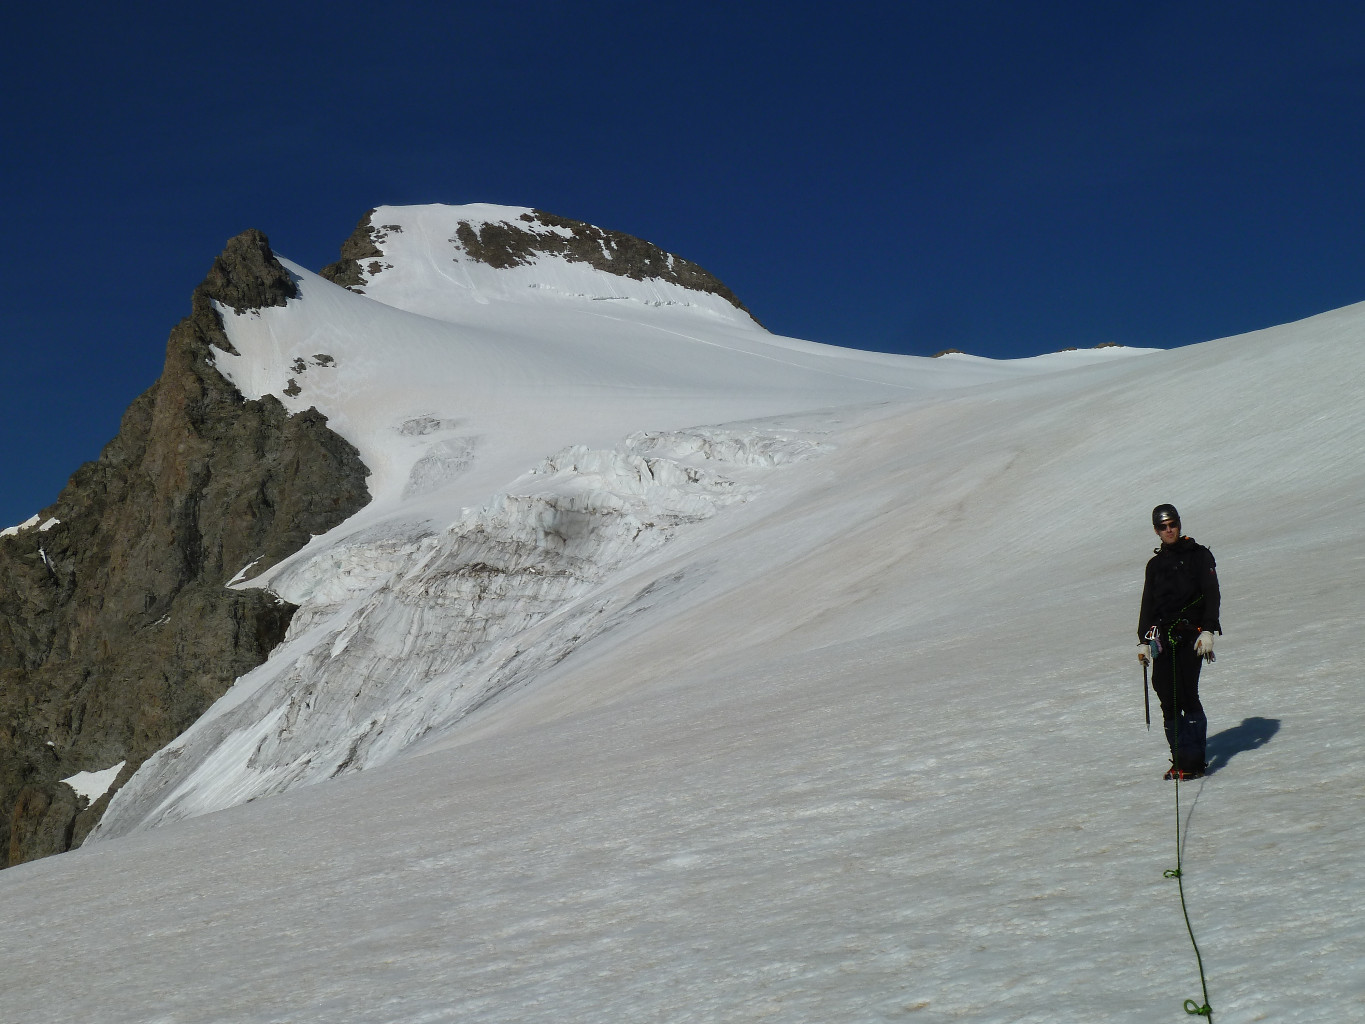 Looking at the glacier and the summit